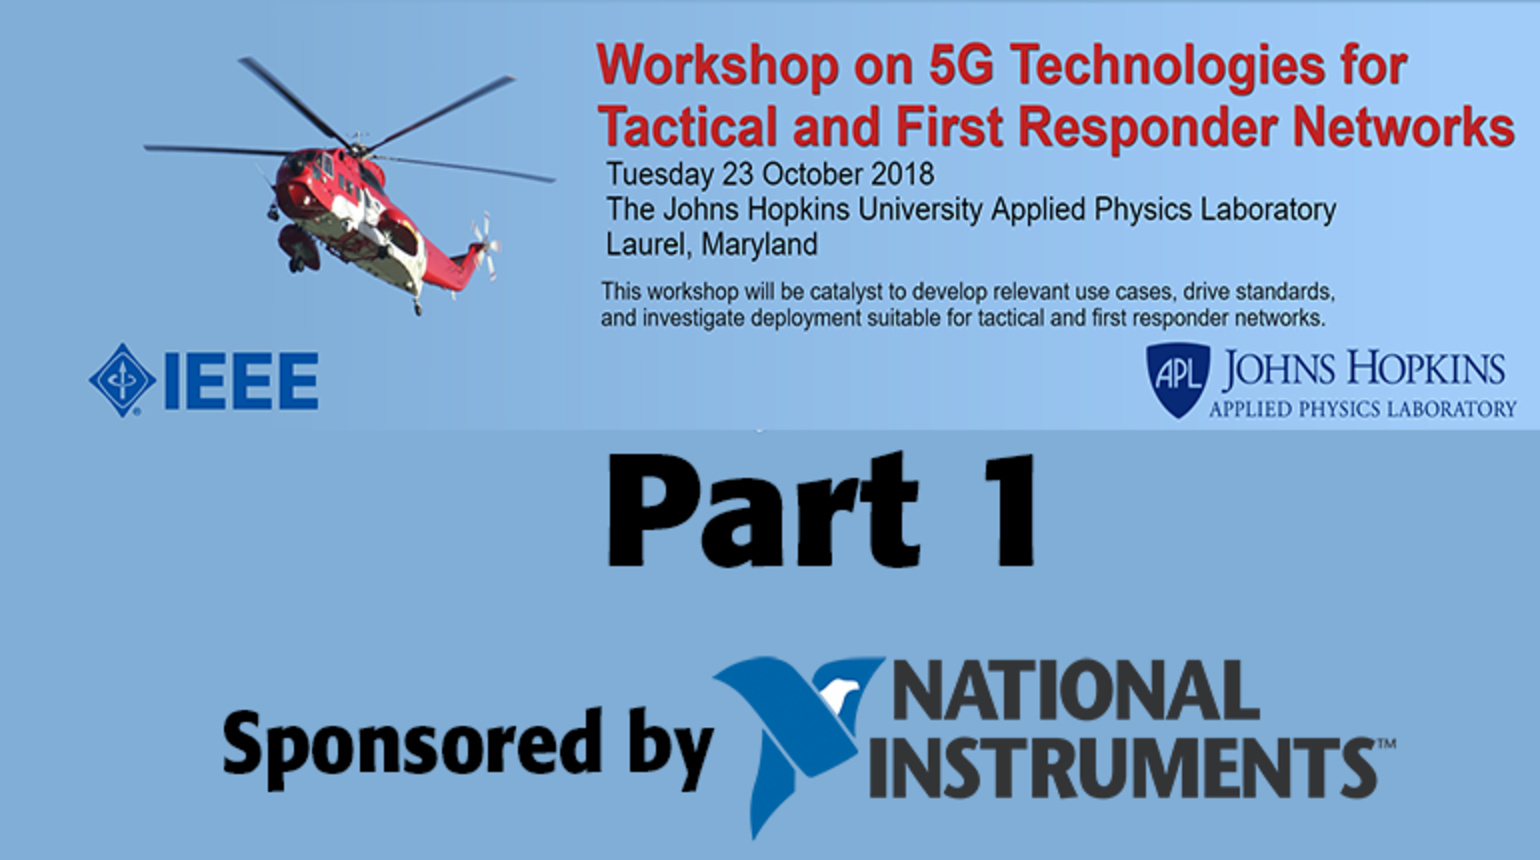 Part 1 of 3: Workshop on 5G Technologies for Tactical and First Responder Networks